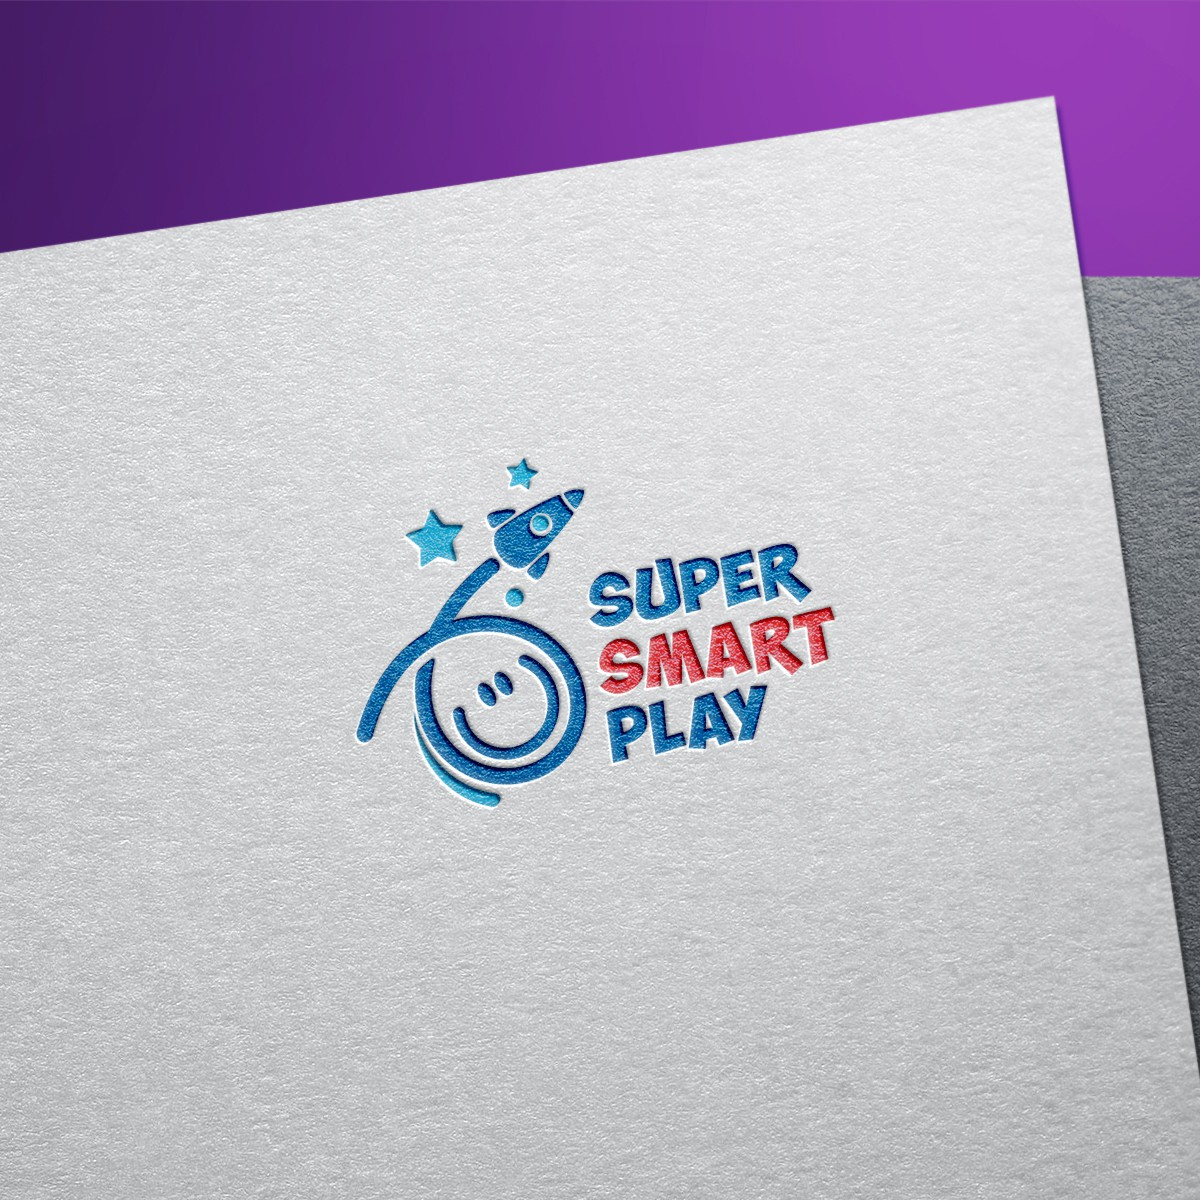 SuperSmartPlay makes crafts & toys for kids - we want a logo to launch us!